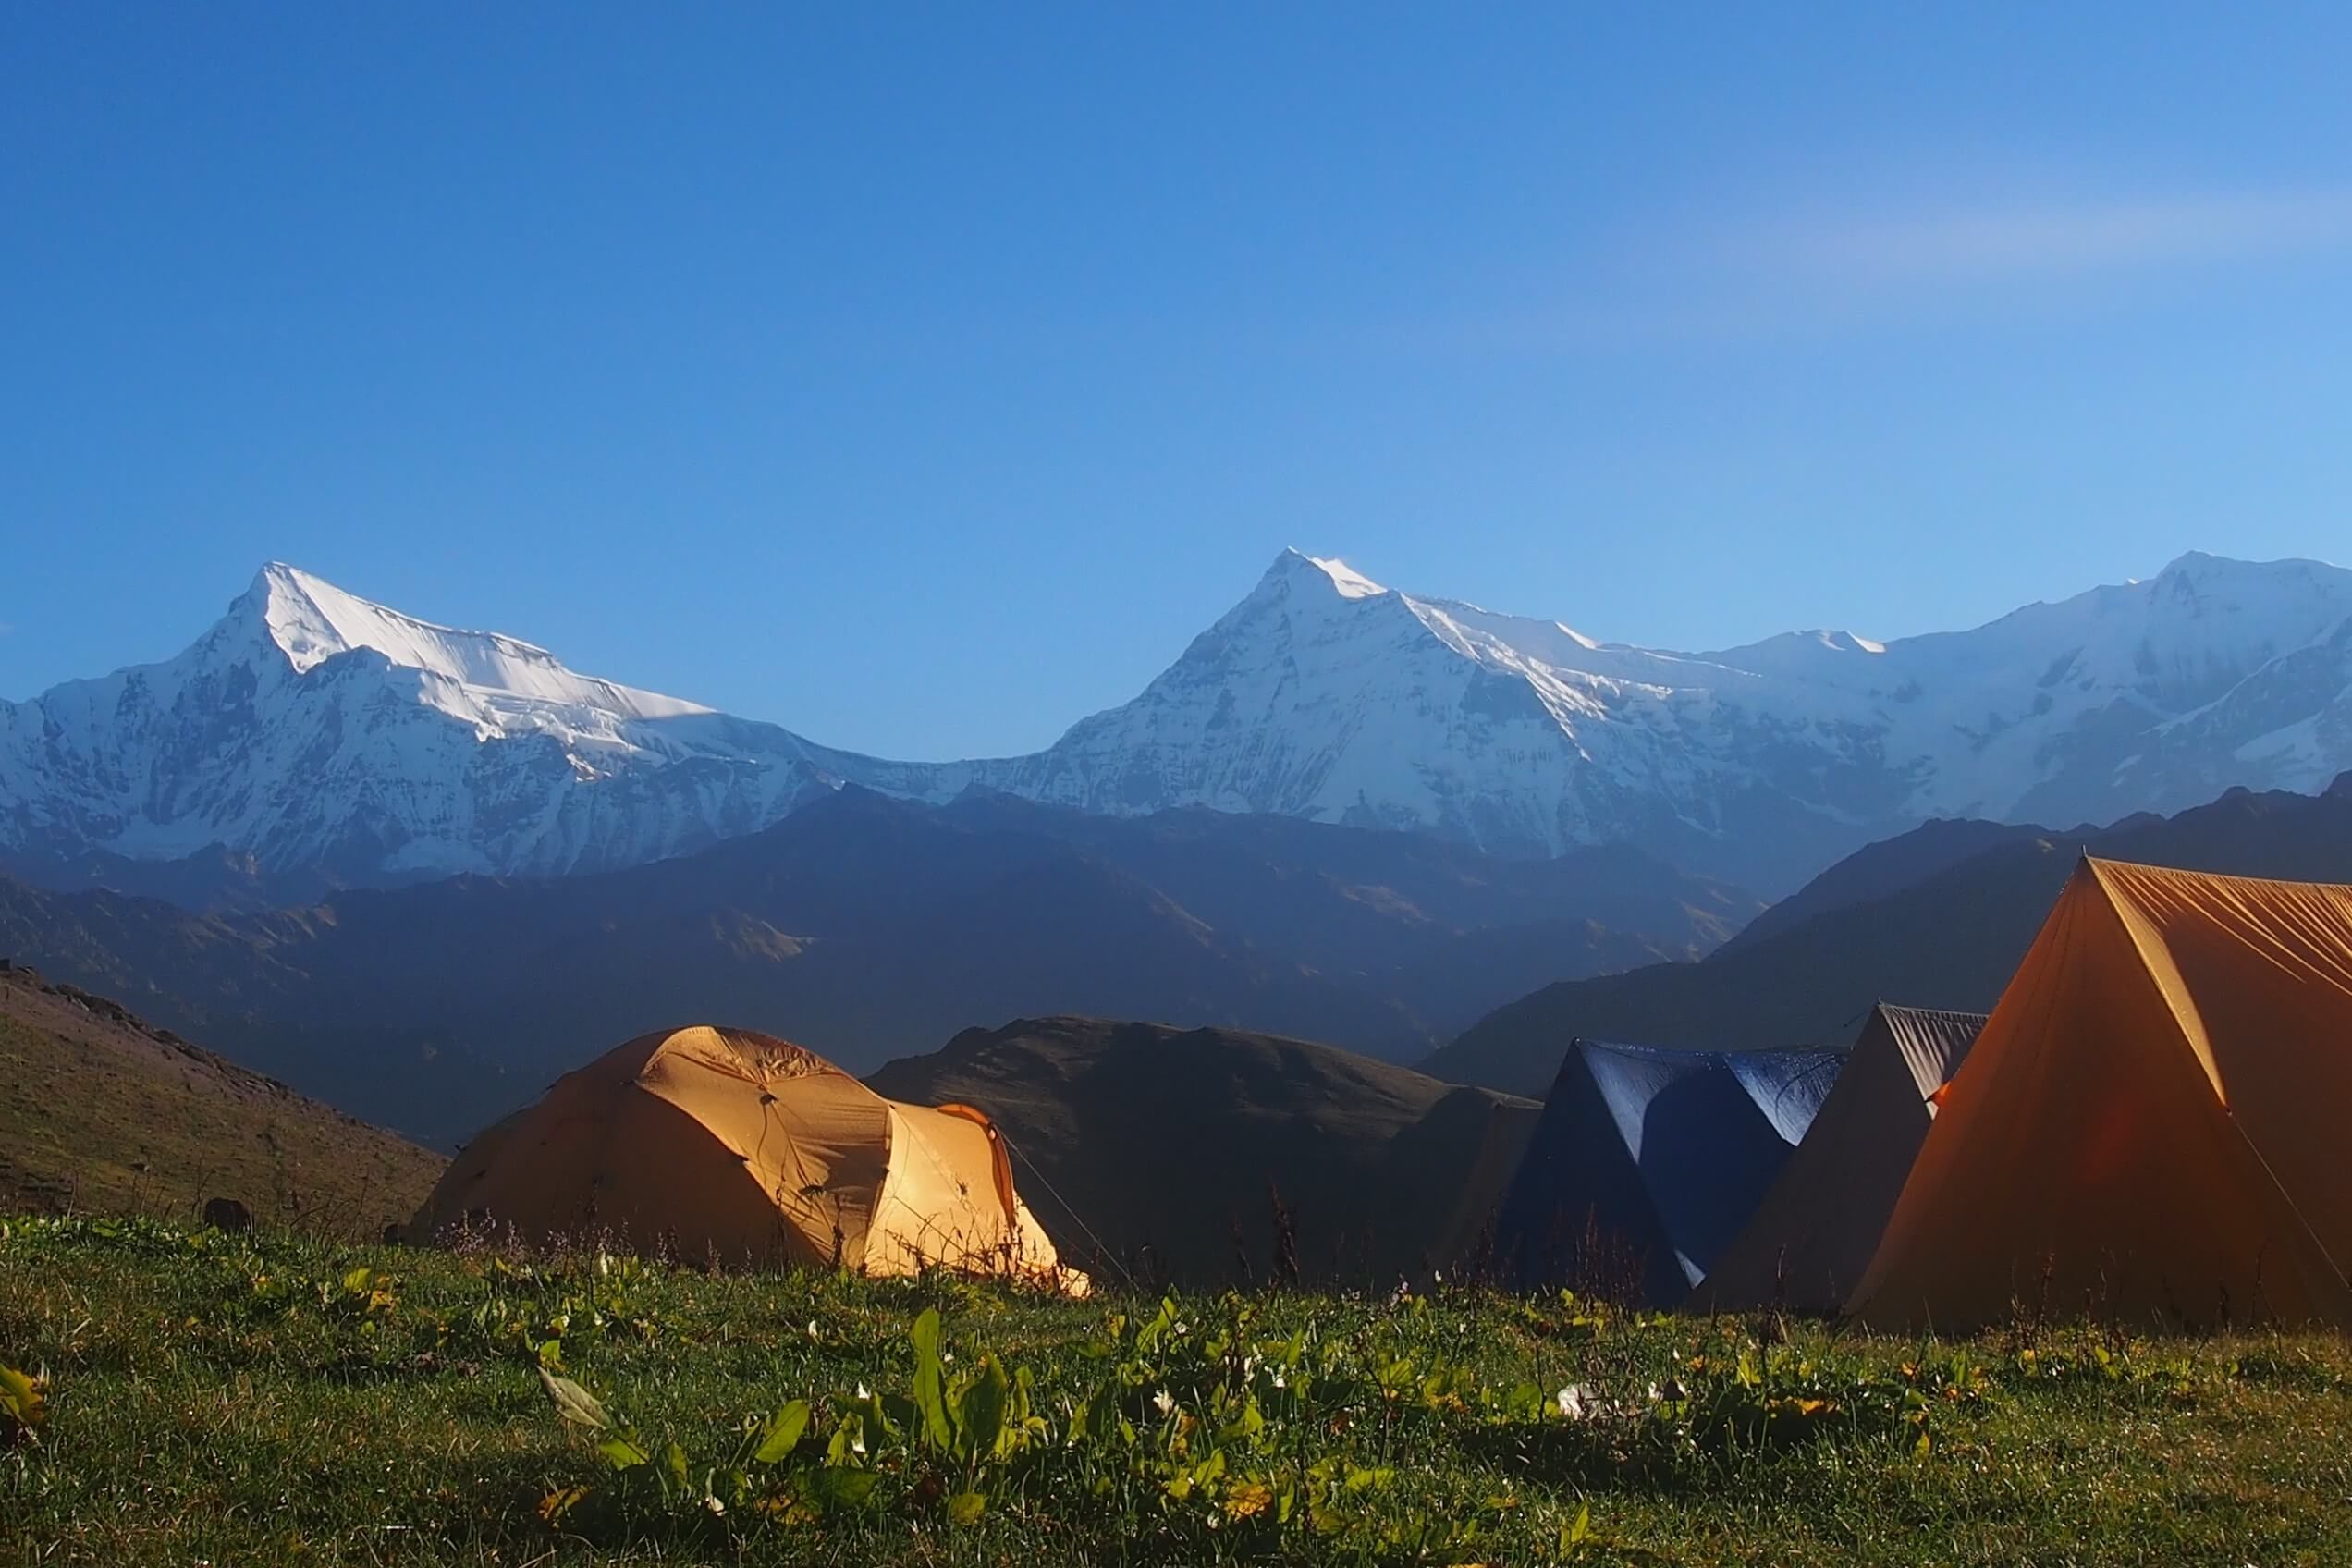 Dhorpatan Nepal - Himalayas in the Backdrop